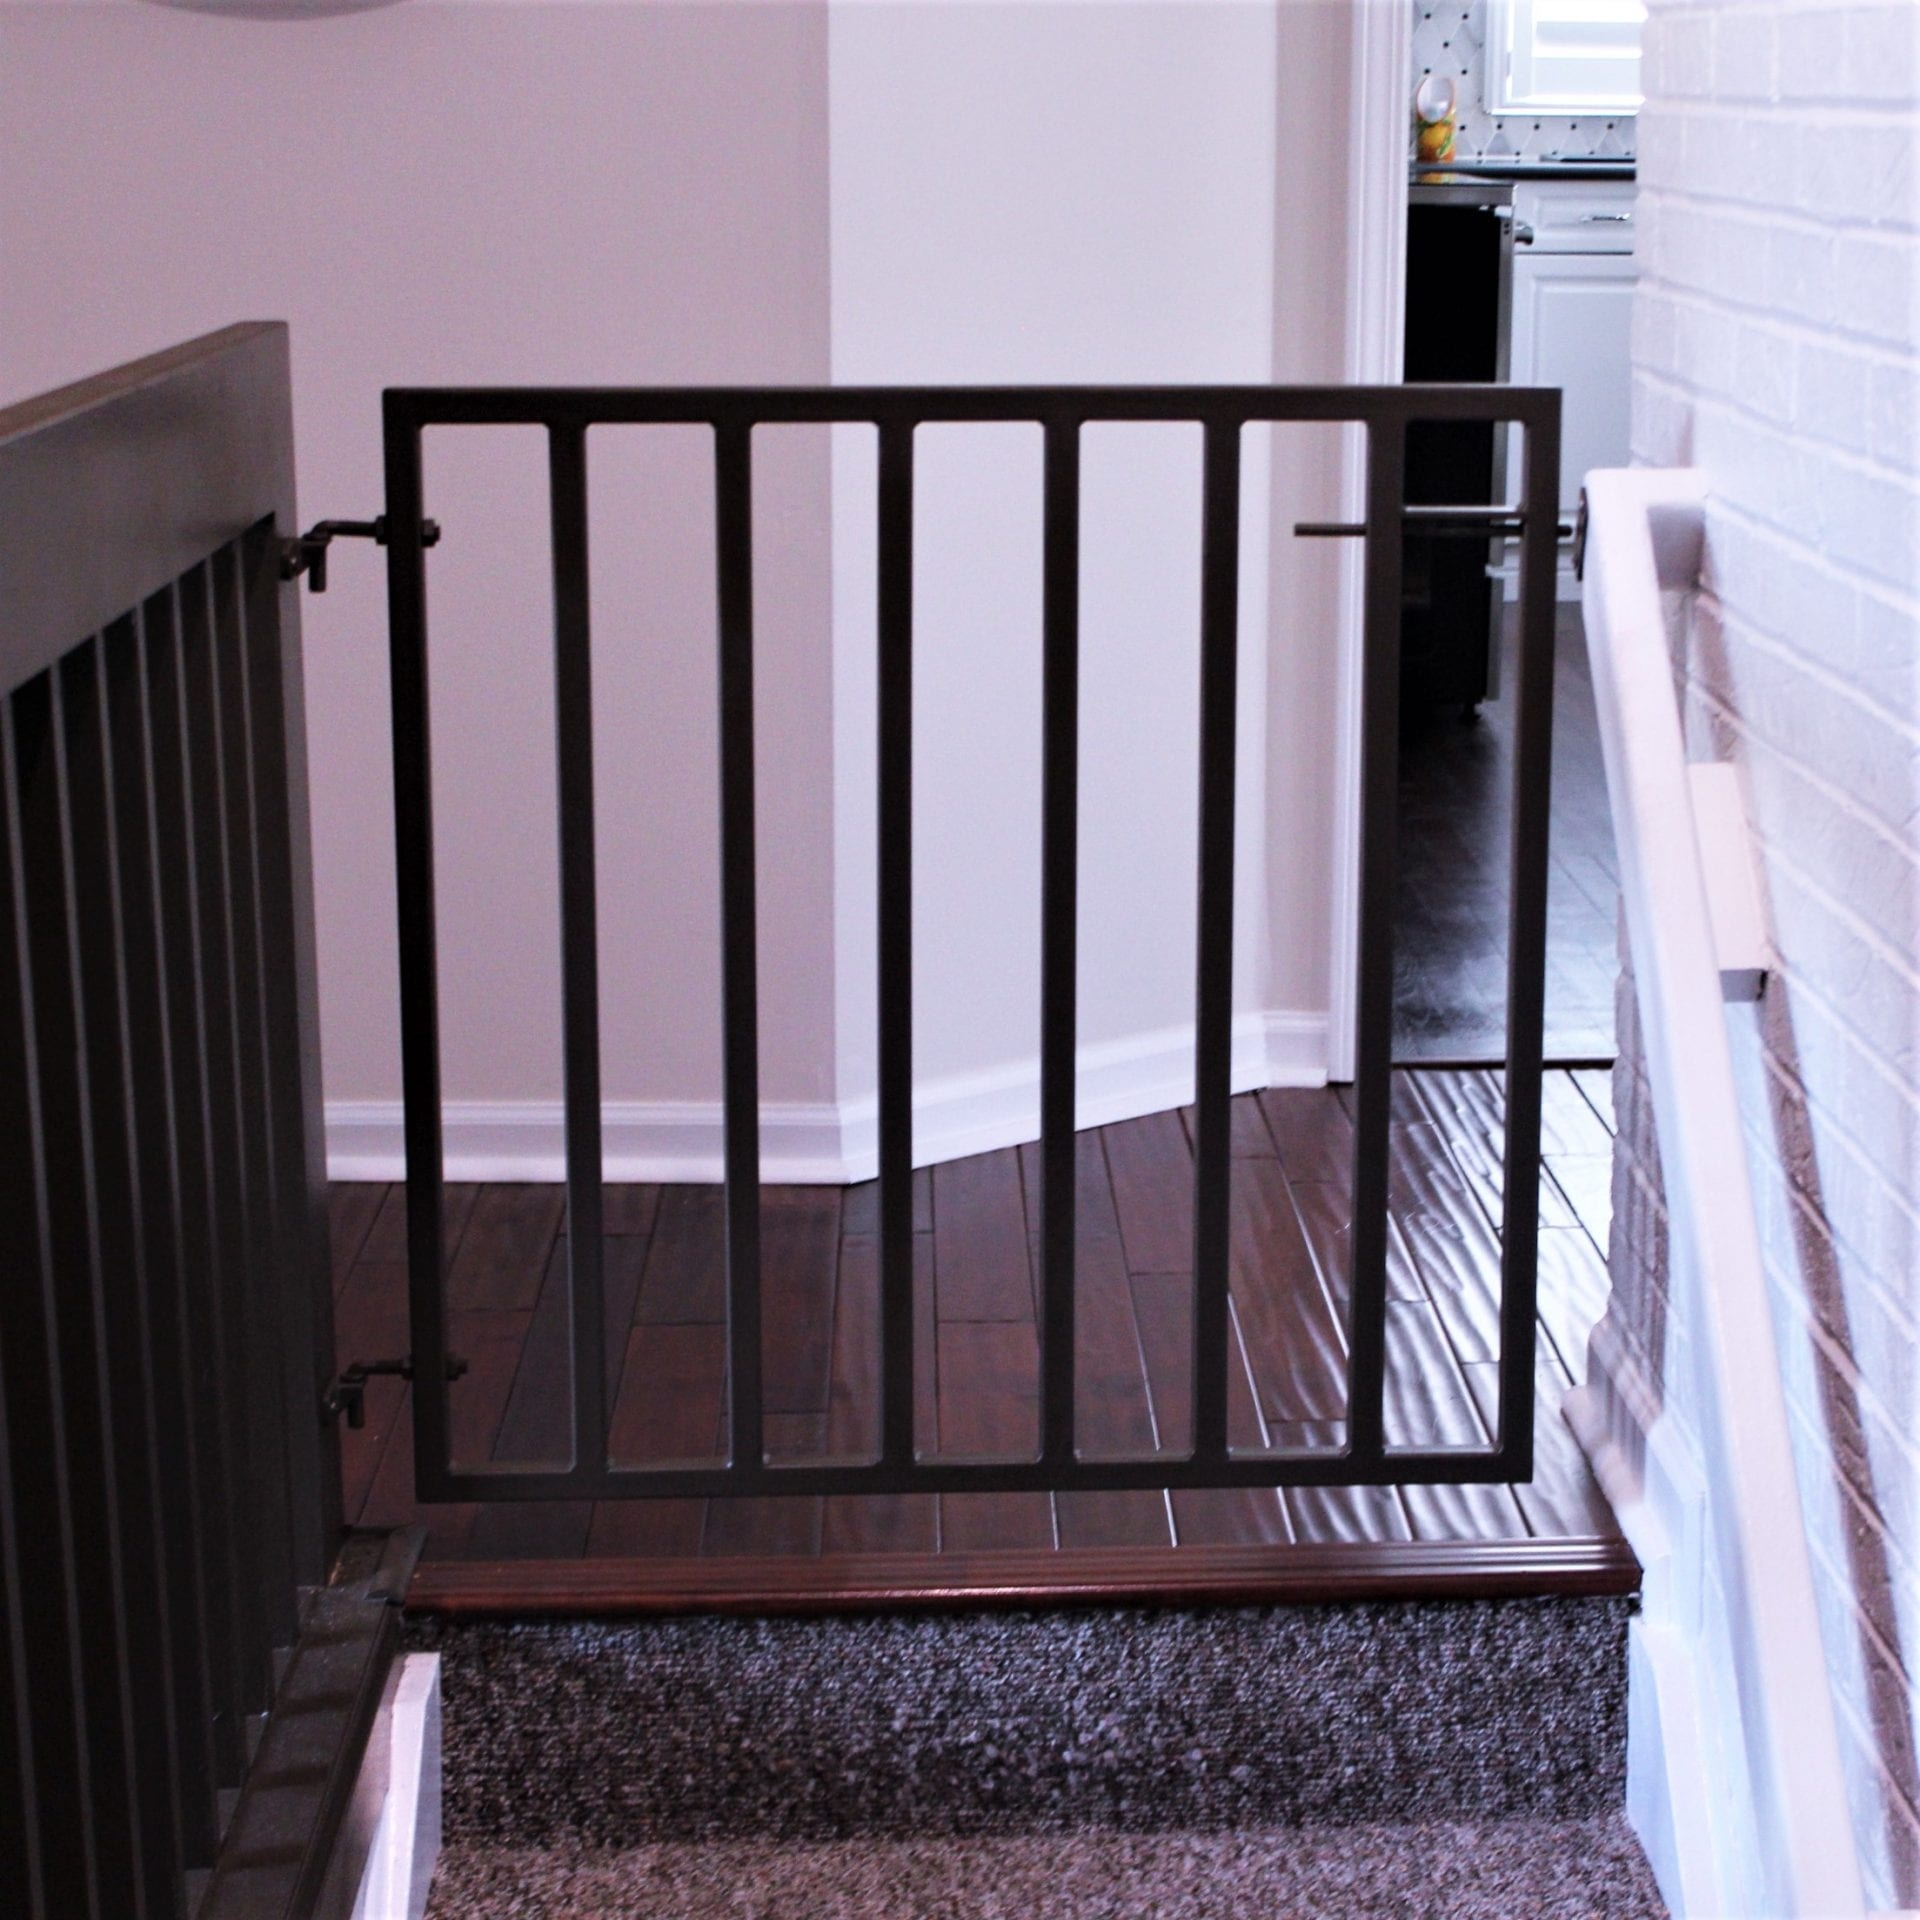 Metal Safety Gate For Stairs Great Lakes Metal Fabrication | Steel Gates And Stairs | Dreamstime | Handrail | Stainless Steel | Fence Gate | Egress